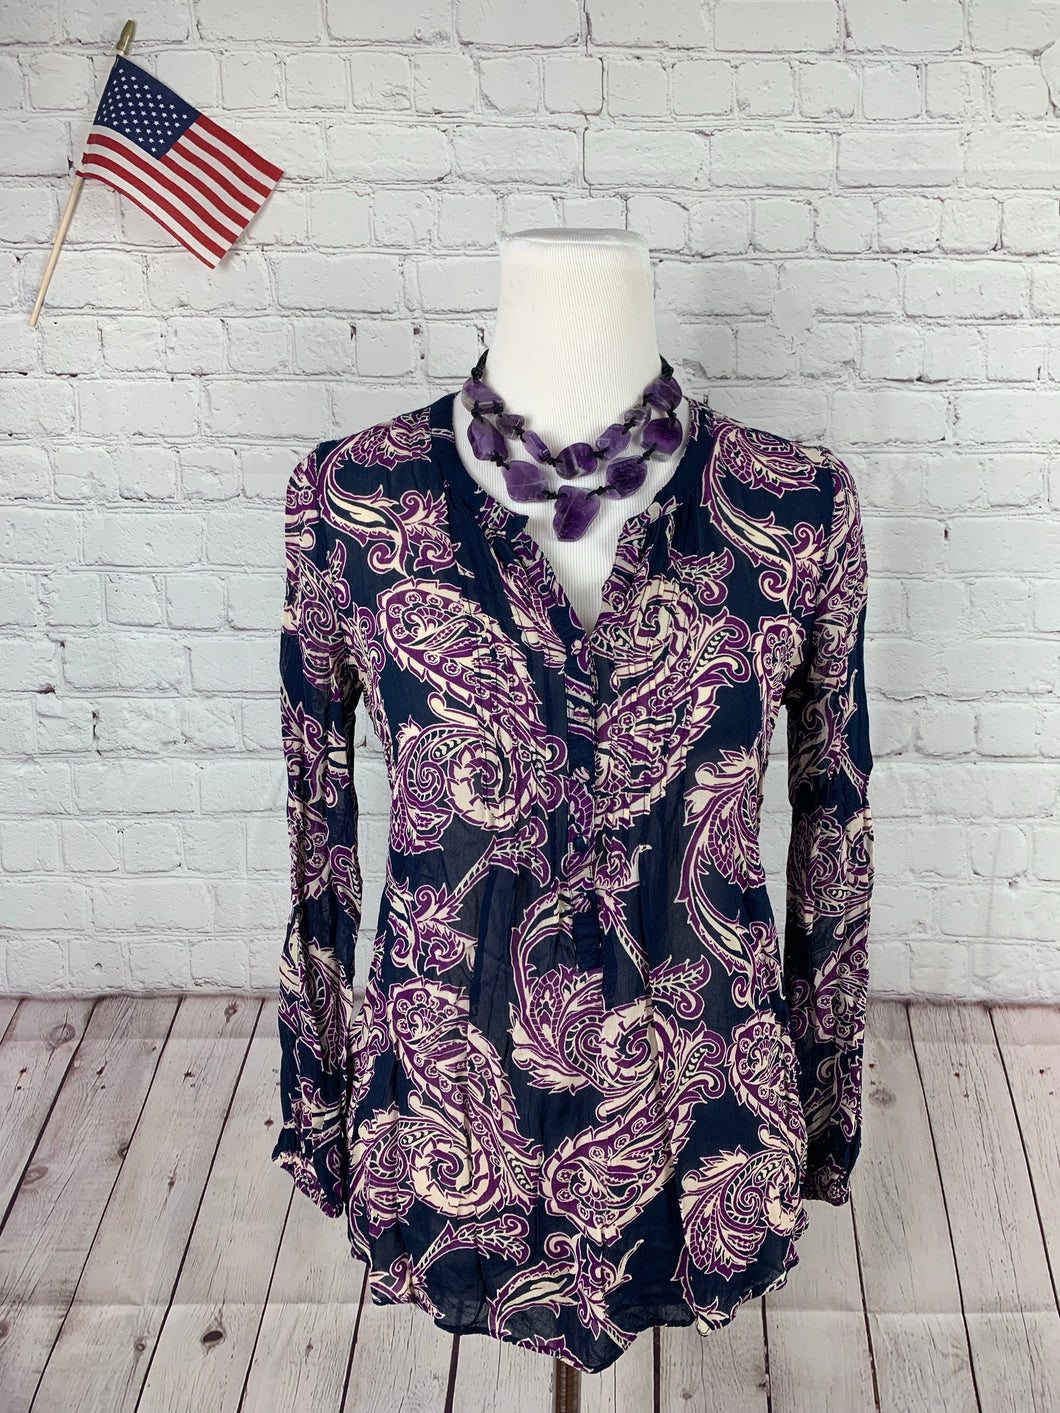 Lucky Brand Women's Blue Purple Blouse Small - SUIT CHARITY OUTLET